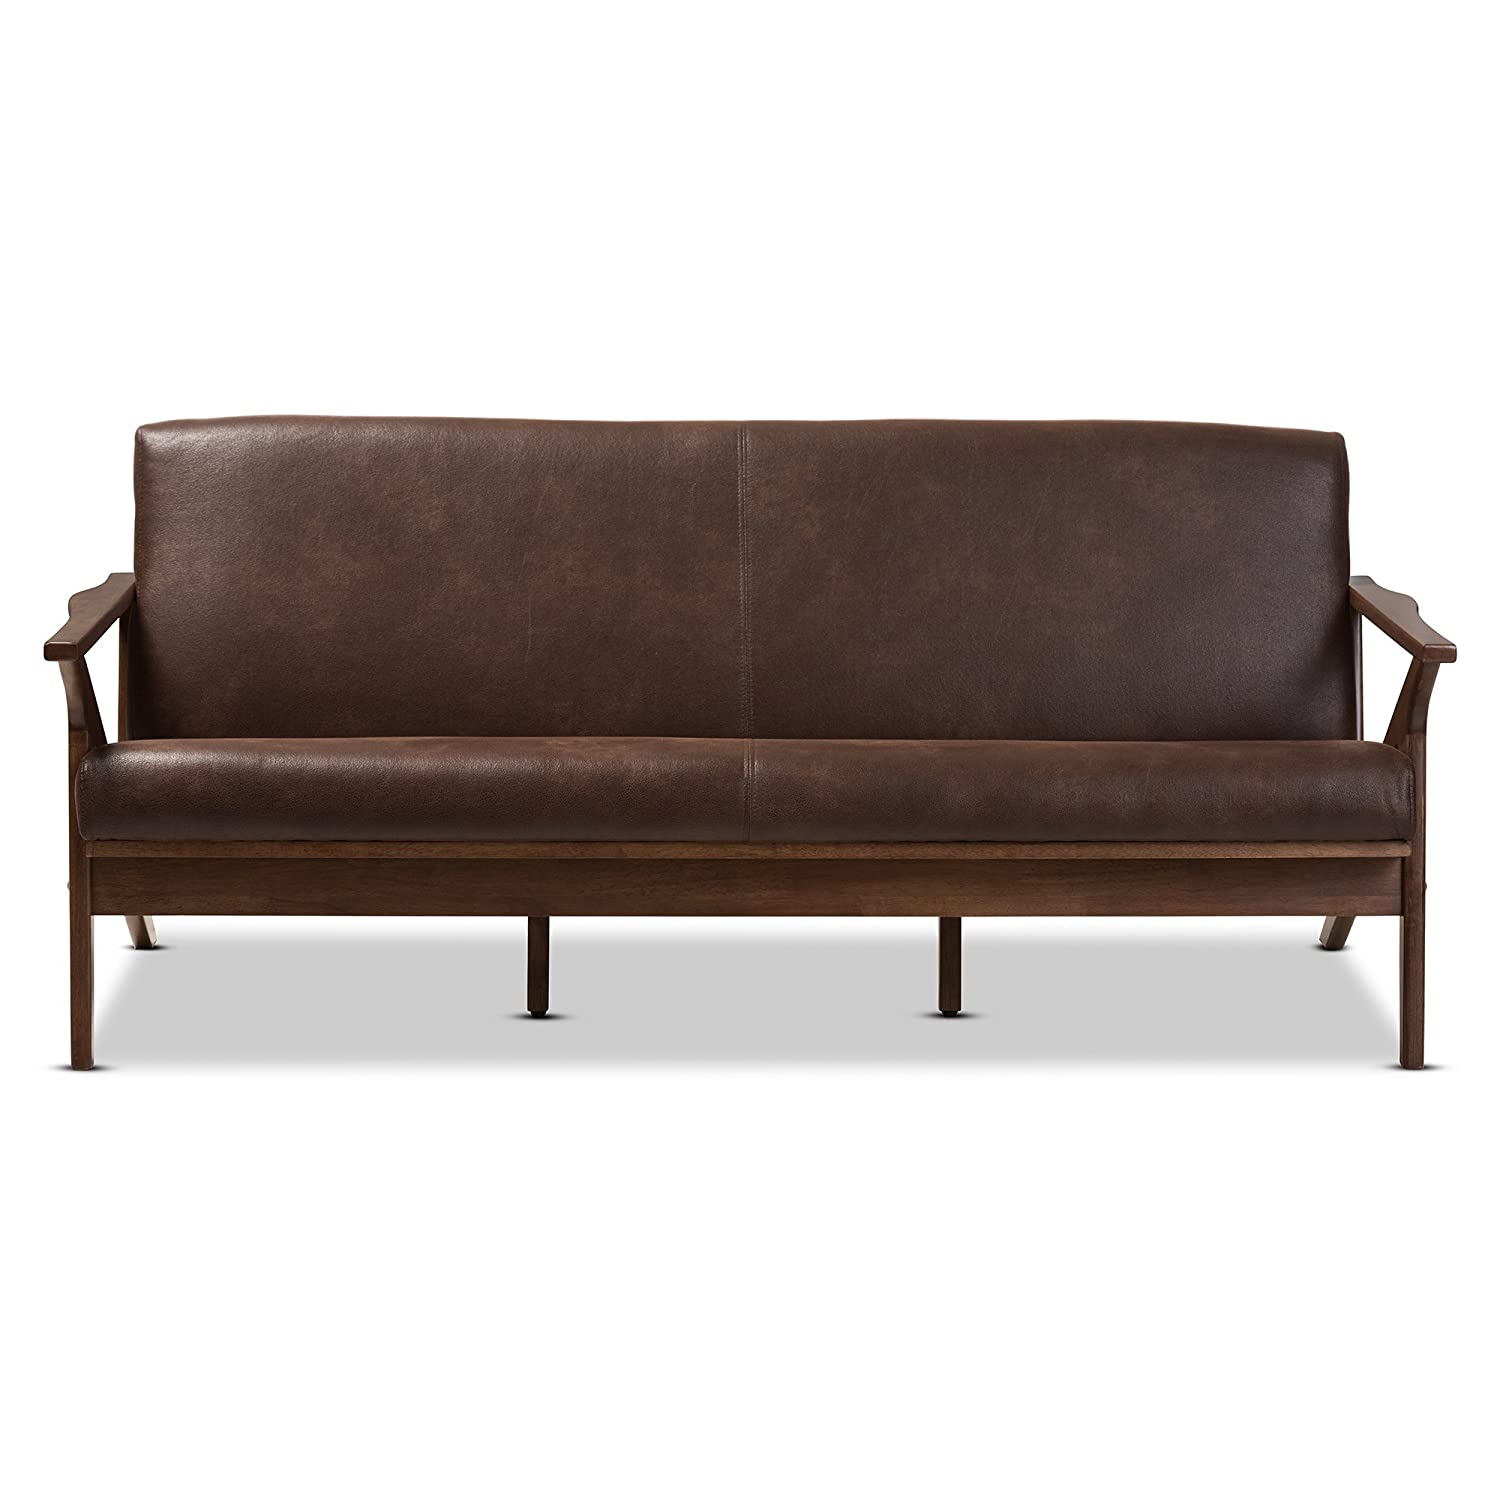 Baxton Studio Bianca Faux Leather Sofa in Dark Brown and Walnut Brown